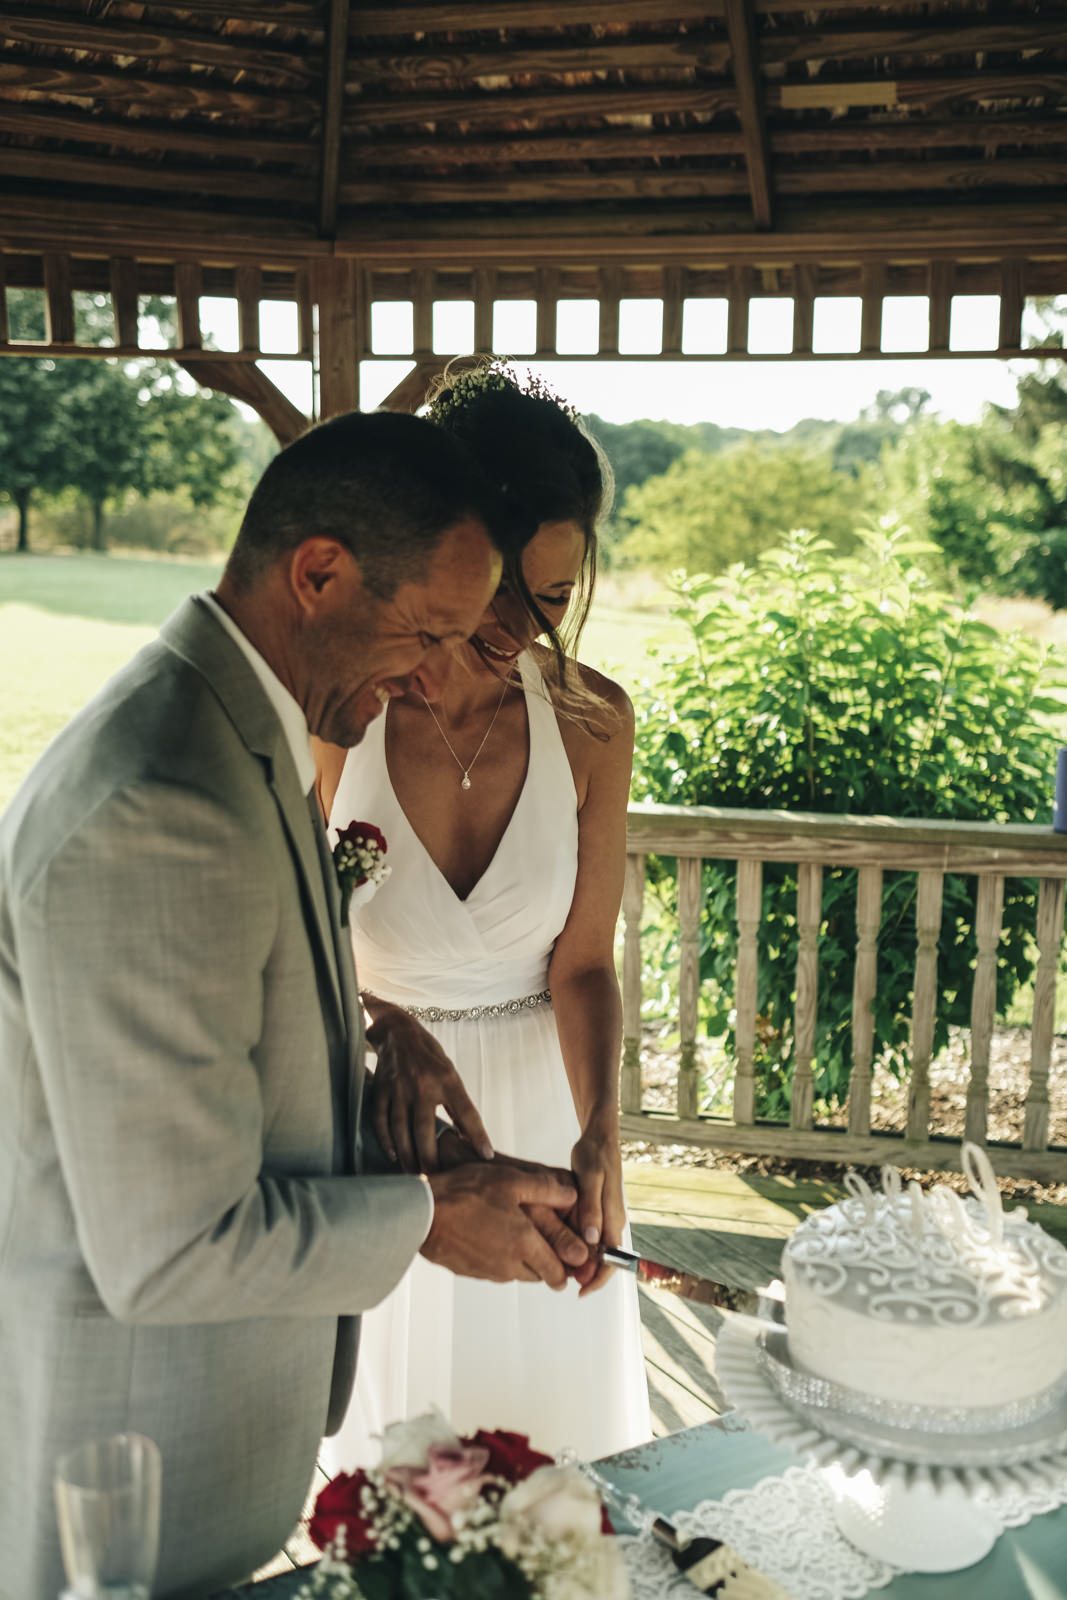 Bride and groom cutting the cake at their elopement.